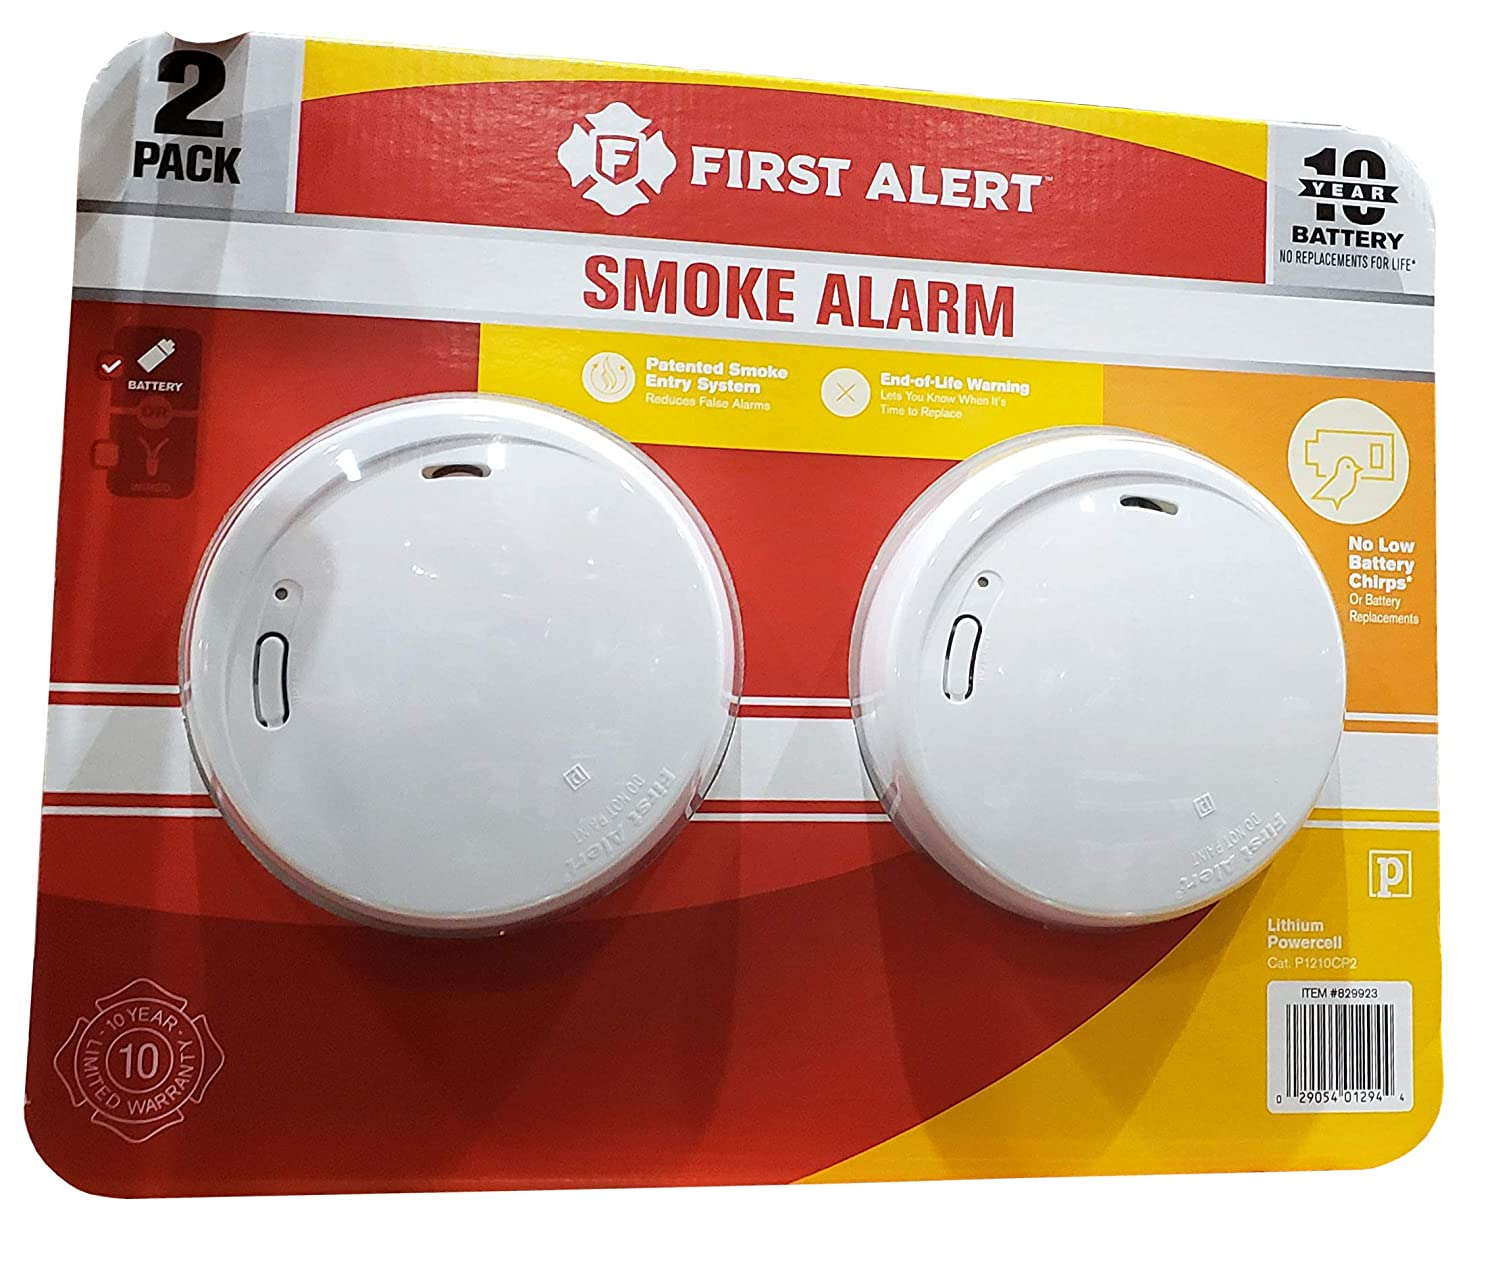 First Alert 10 Year Photoelectric Smoke Alarm 2 Pack Amazon Com Grocery Gourmet Food